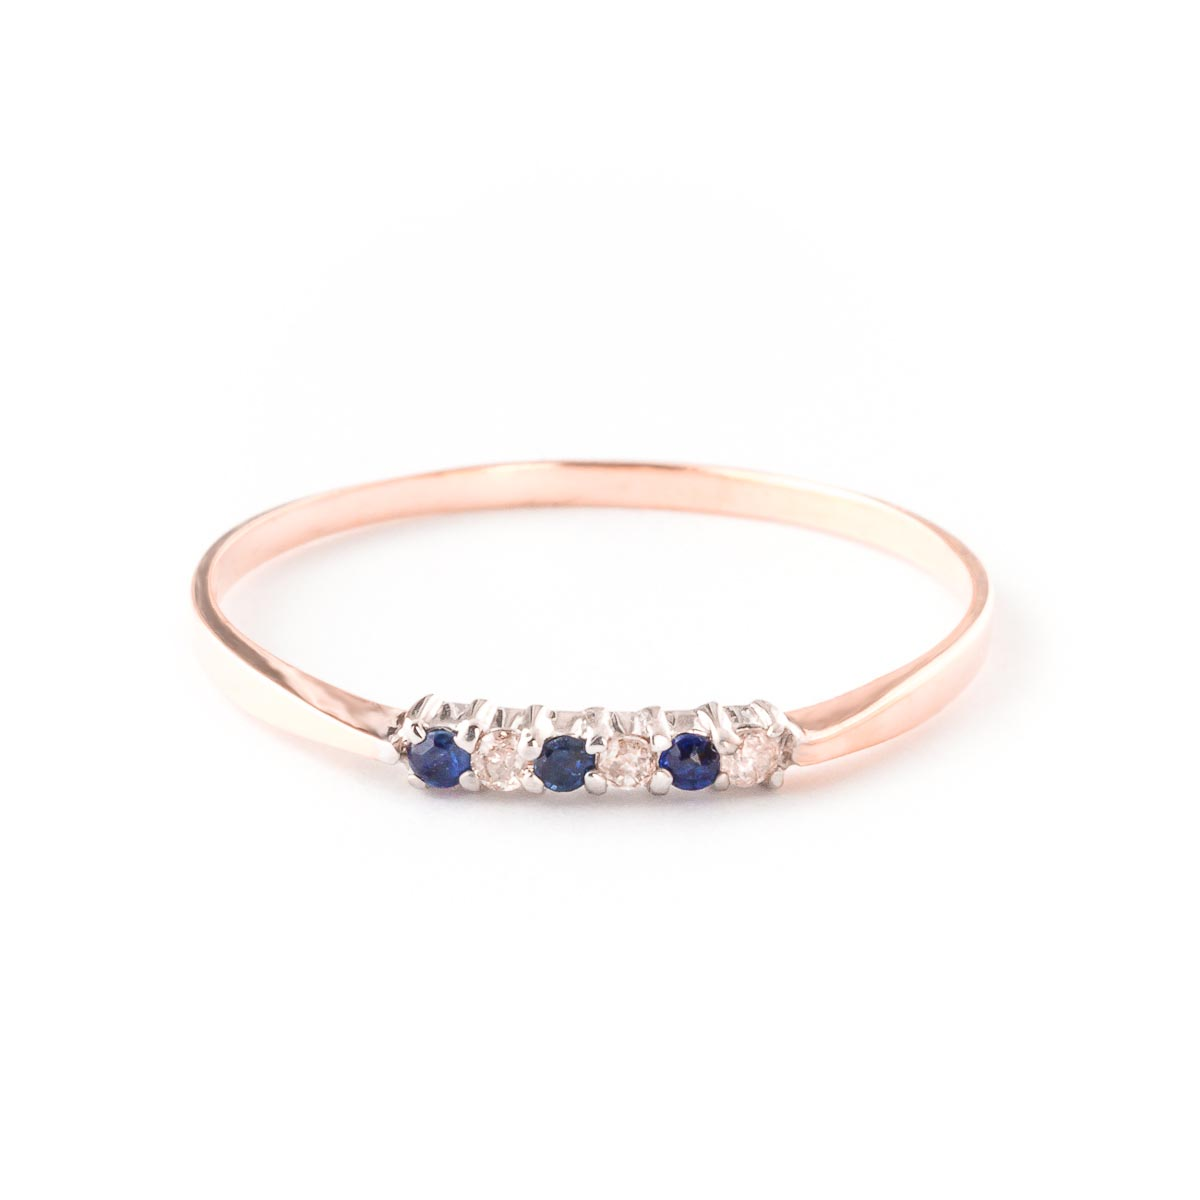 Diamond and Sapphire Ring in 9ct Rose Gold